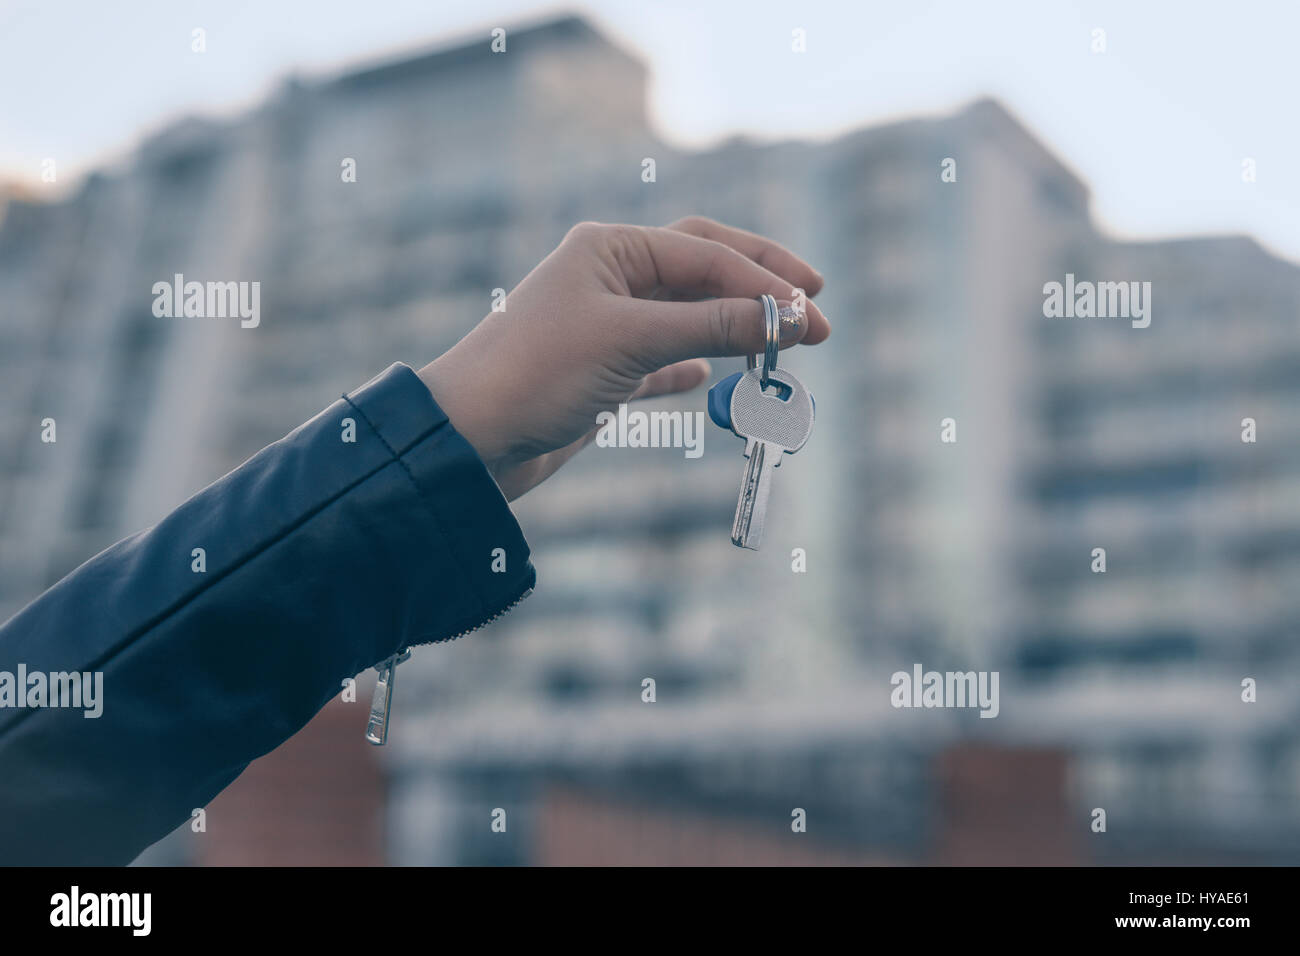 Hand holding key with modern building on background. Buying new home or flat concept. Stock Photo